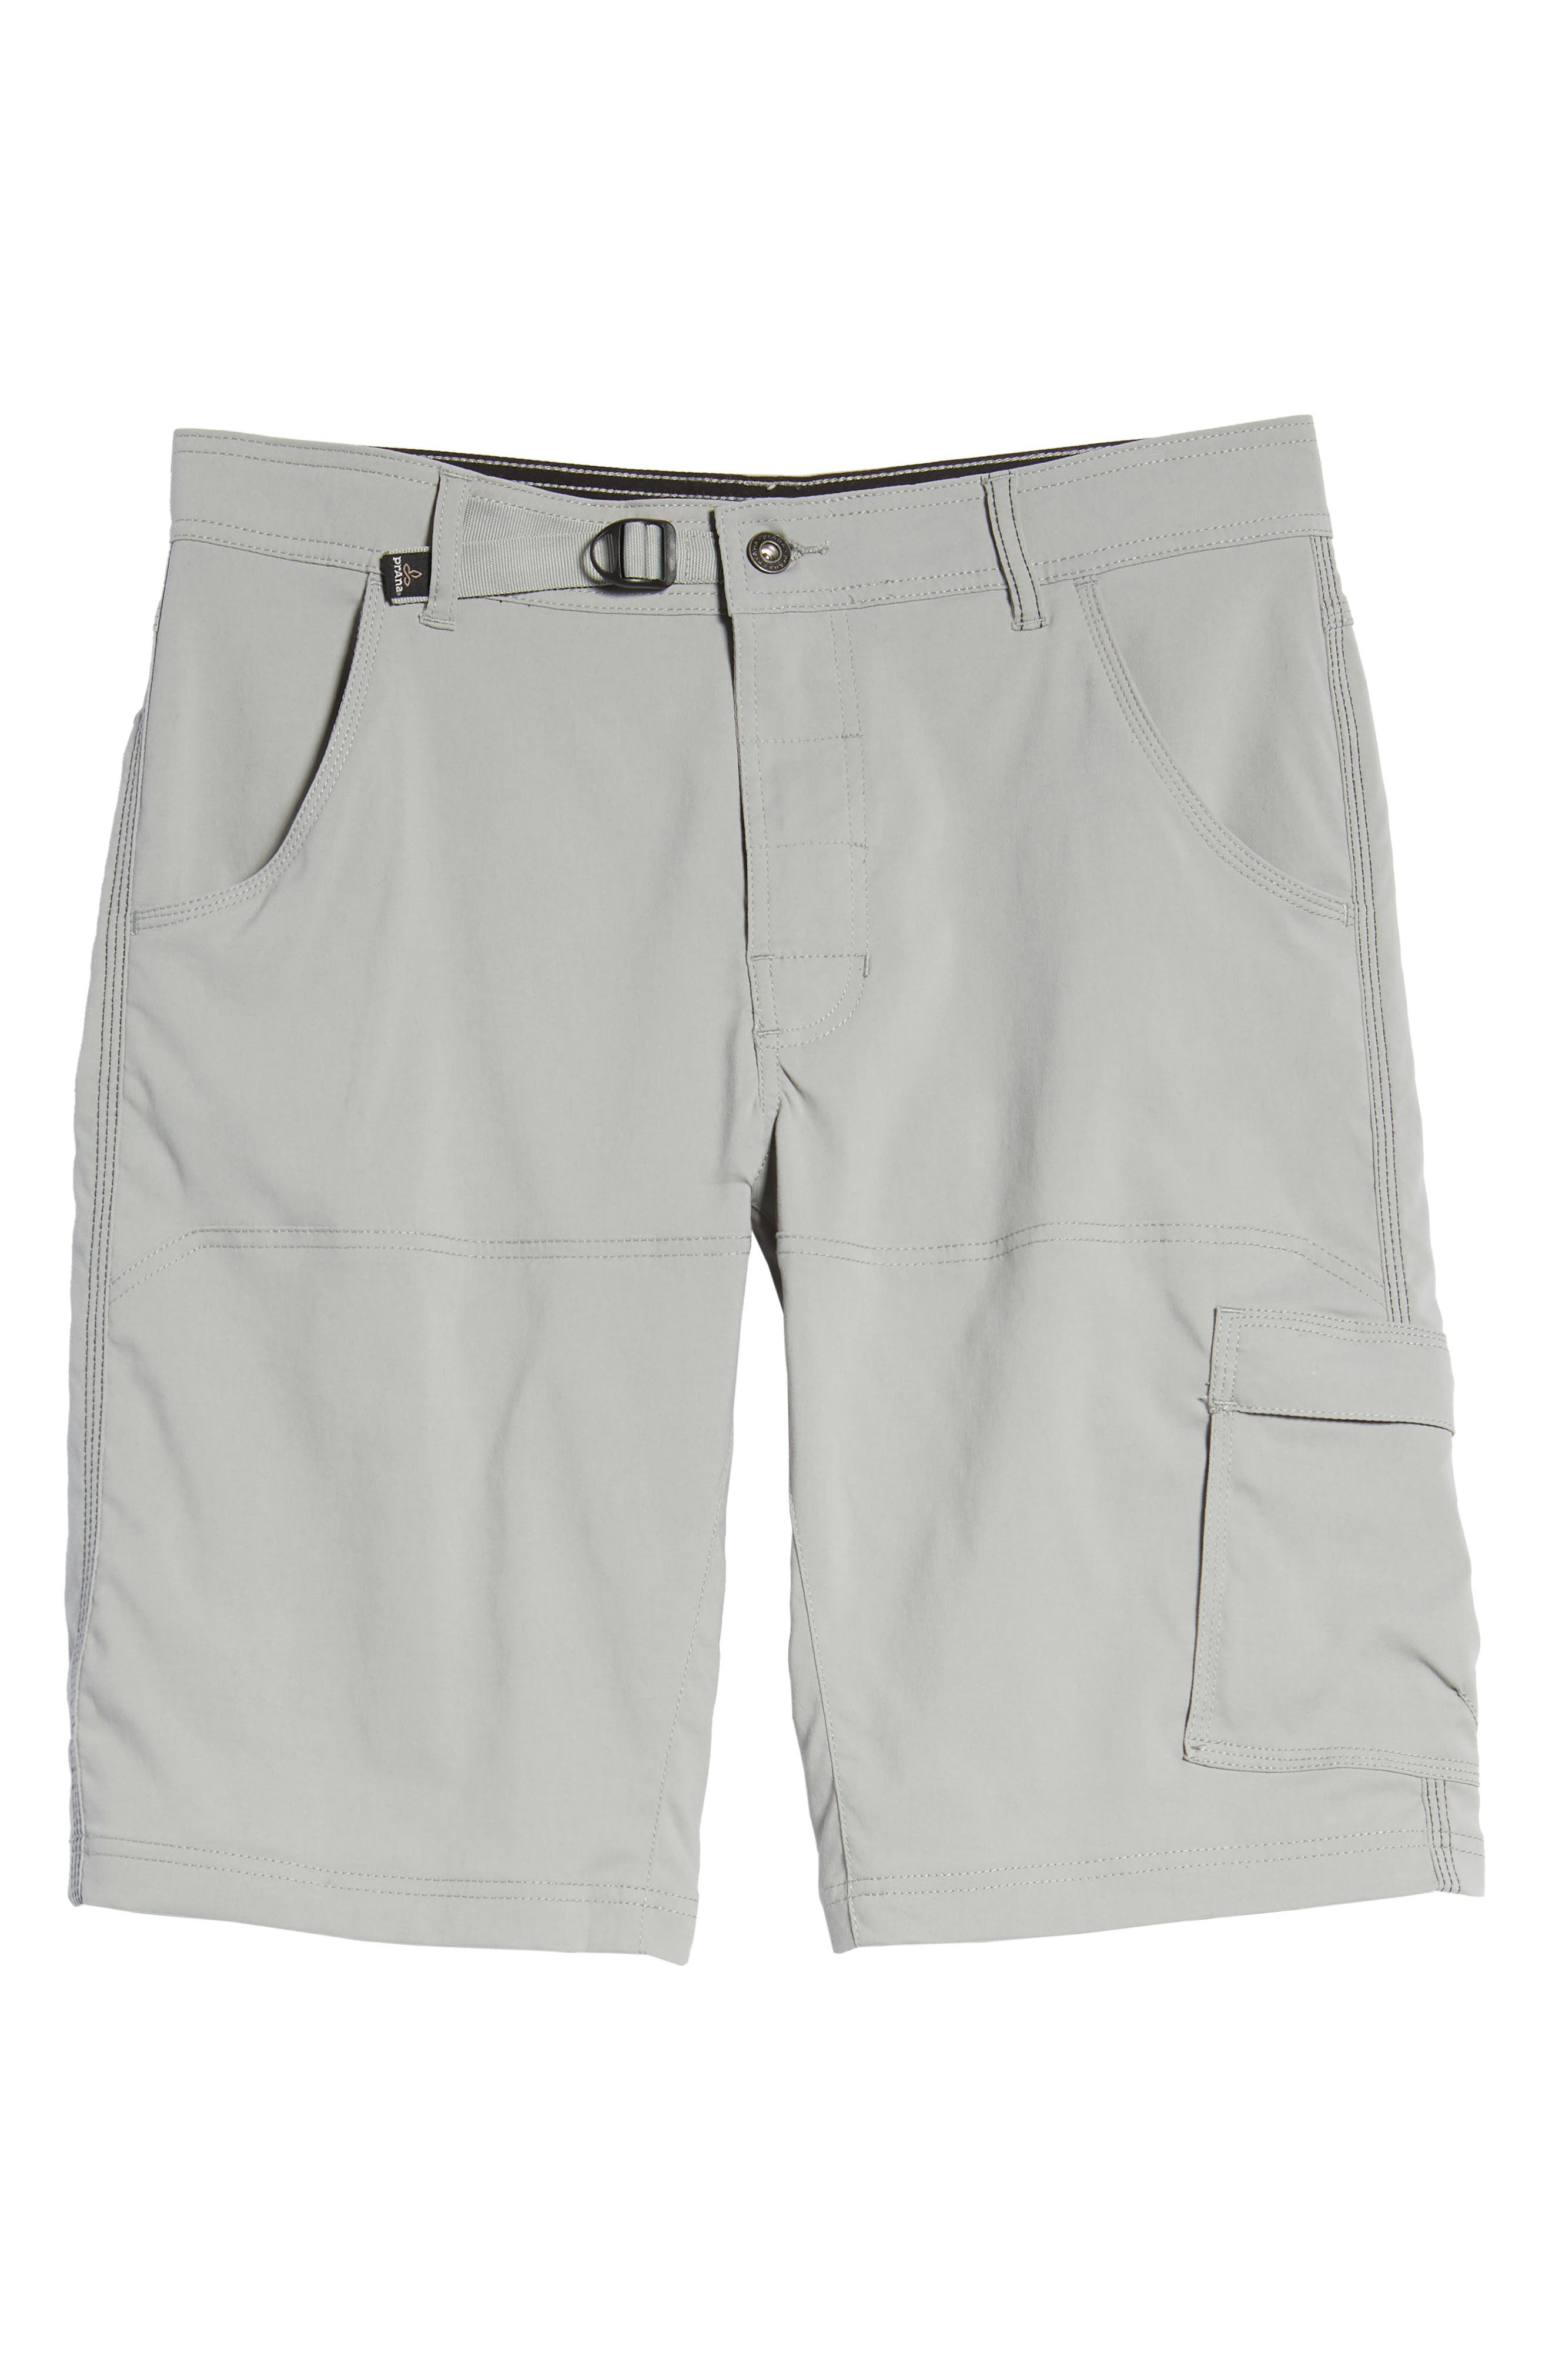 Zion Stretch Shorts,                             Alternate thumbnail 6, color,                             020